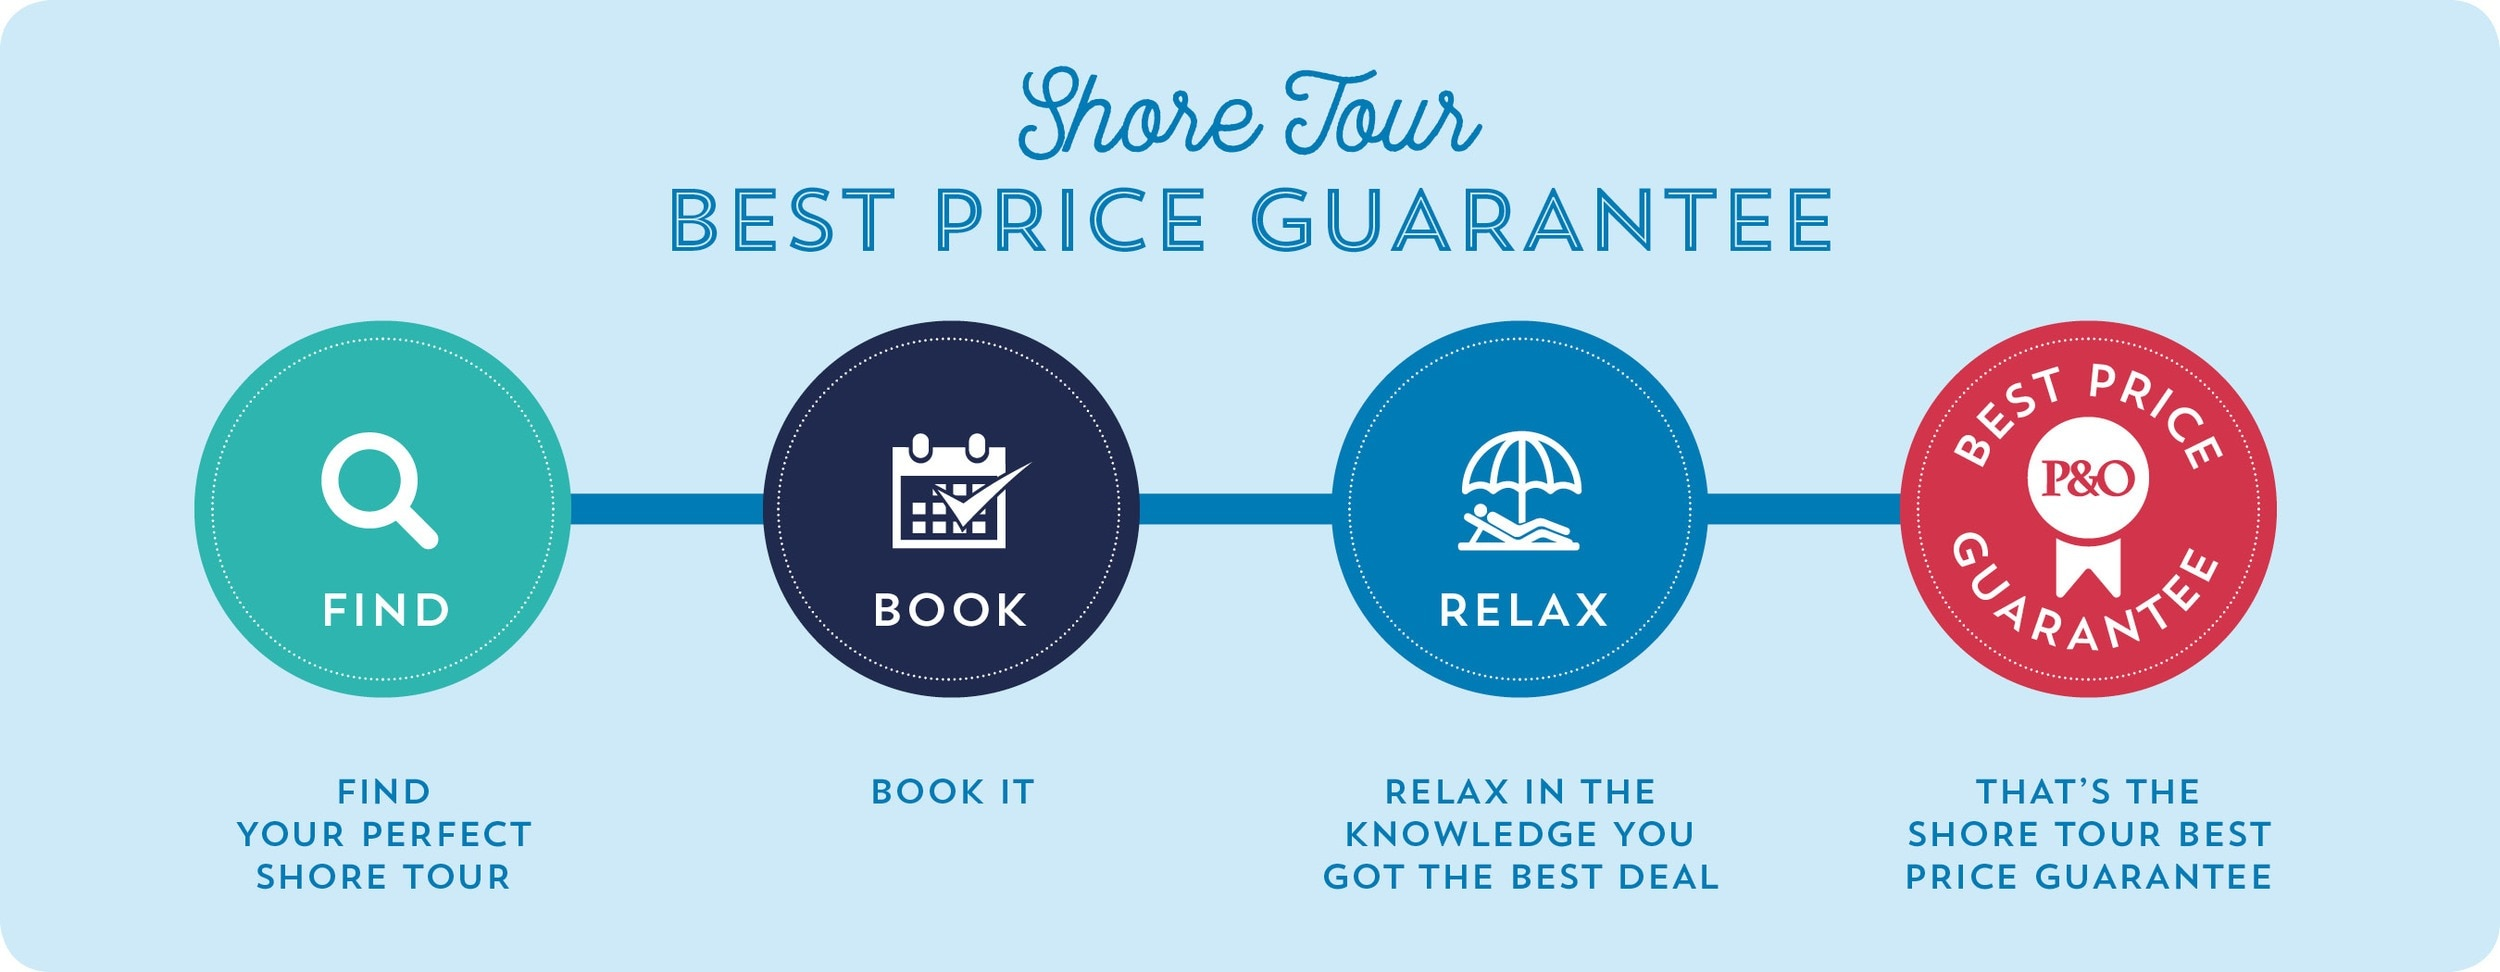 Shore Tour Best Price Guarantee